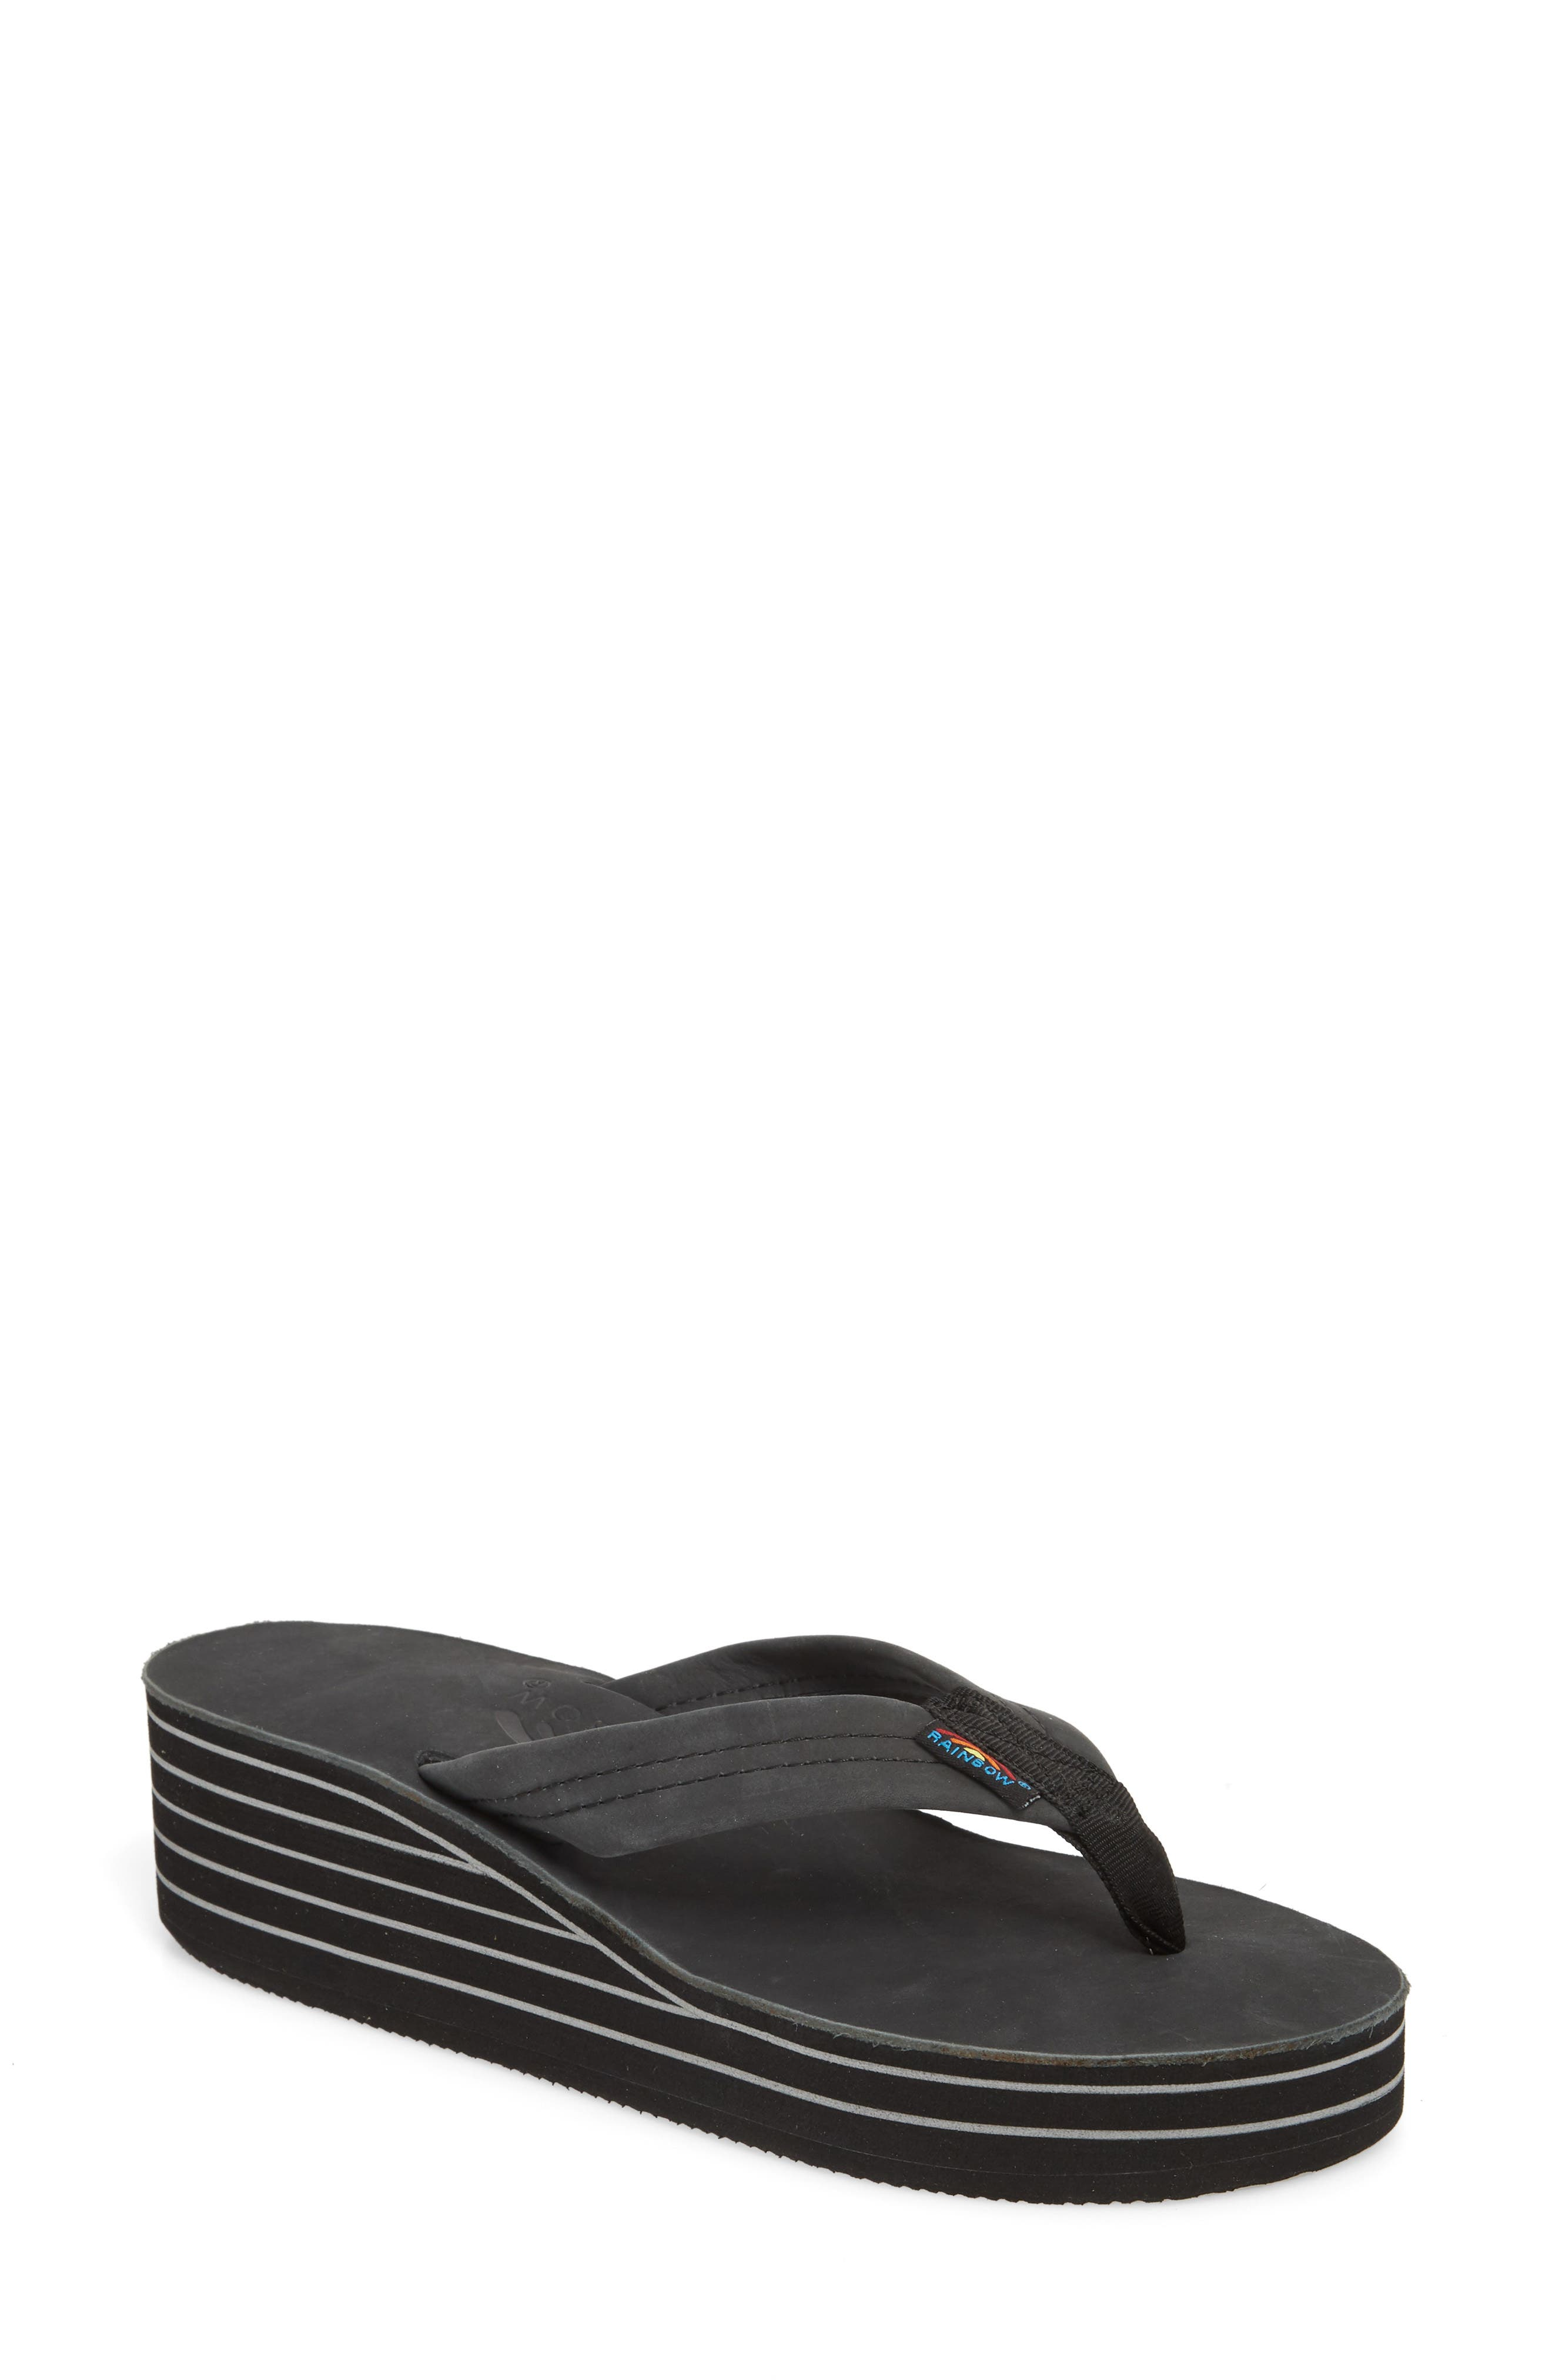 RAINBOW<SUP>®</SUP> Rainbow 6-Layer Wedge Flip Flop, Main, color, 001